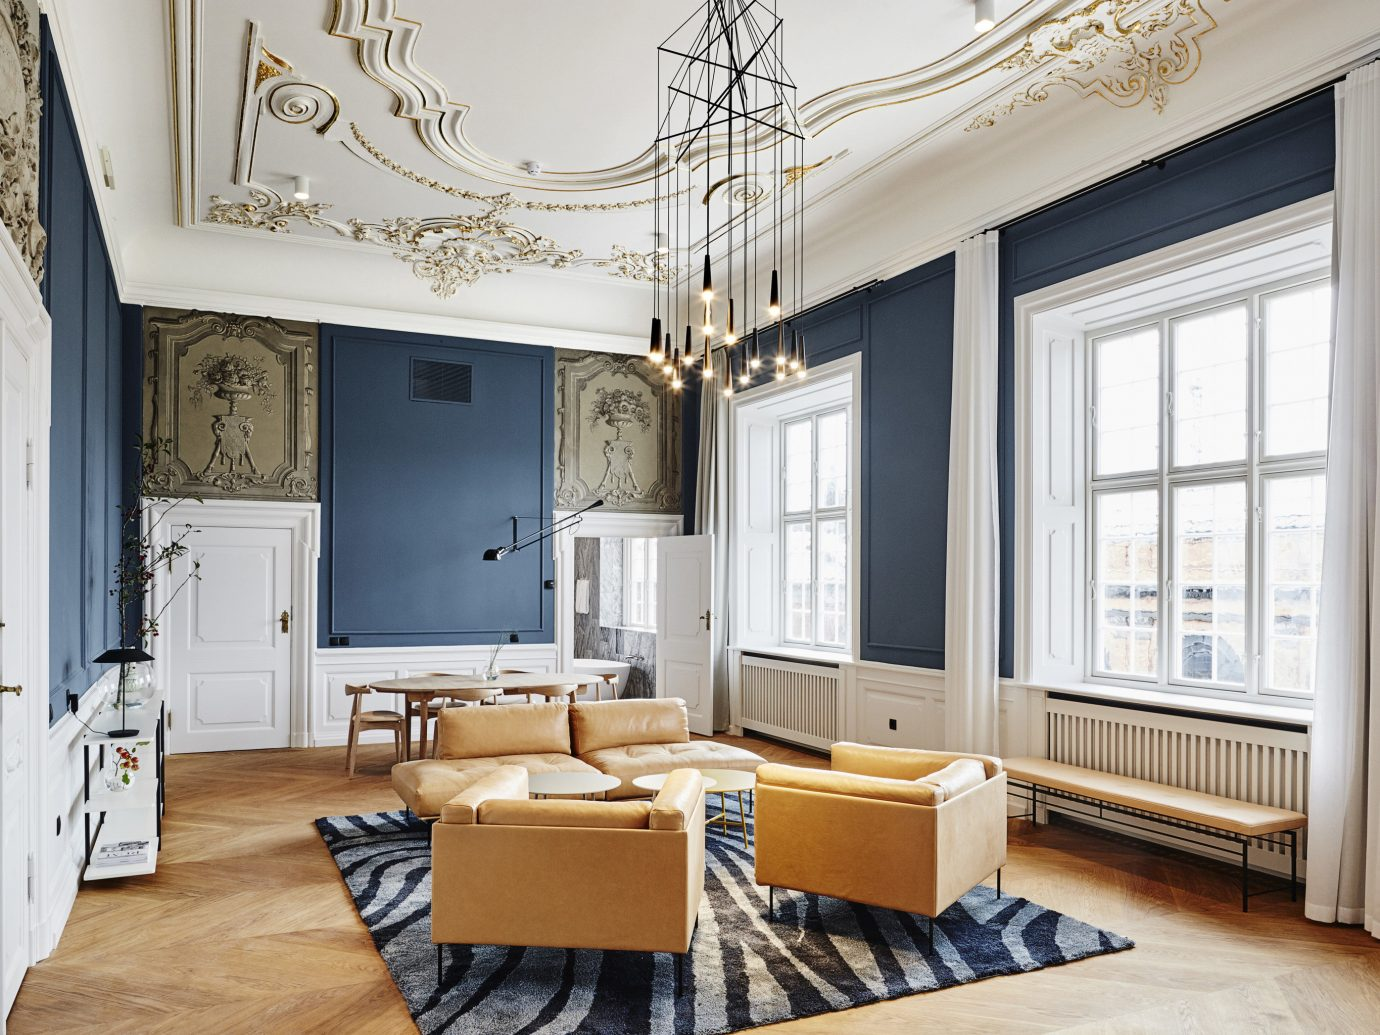 Beach Boutique Hotels Copenhagen Denmark Design Hotels Summer Travel Trip Ideas floor indoor window living room interior design room ceiling home furniture interior designer estate loft flooring table